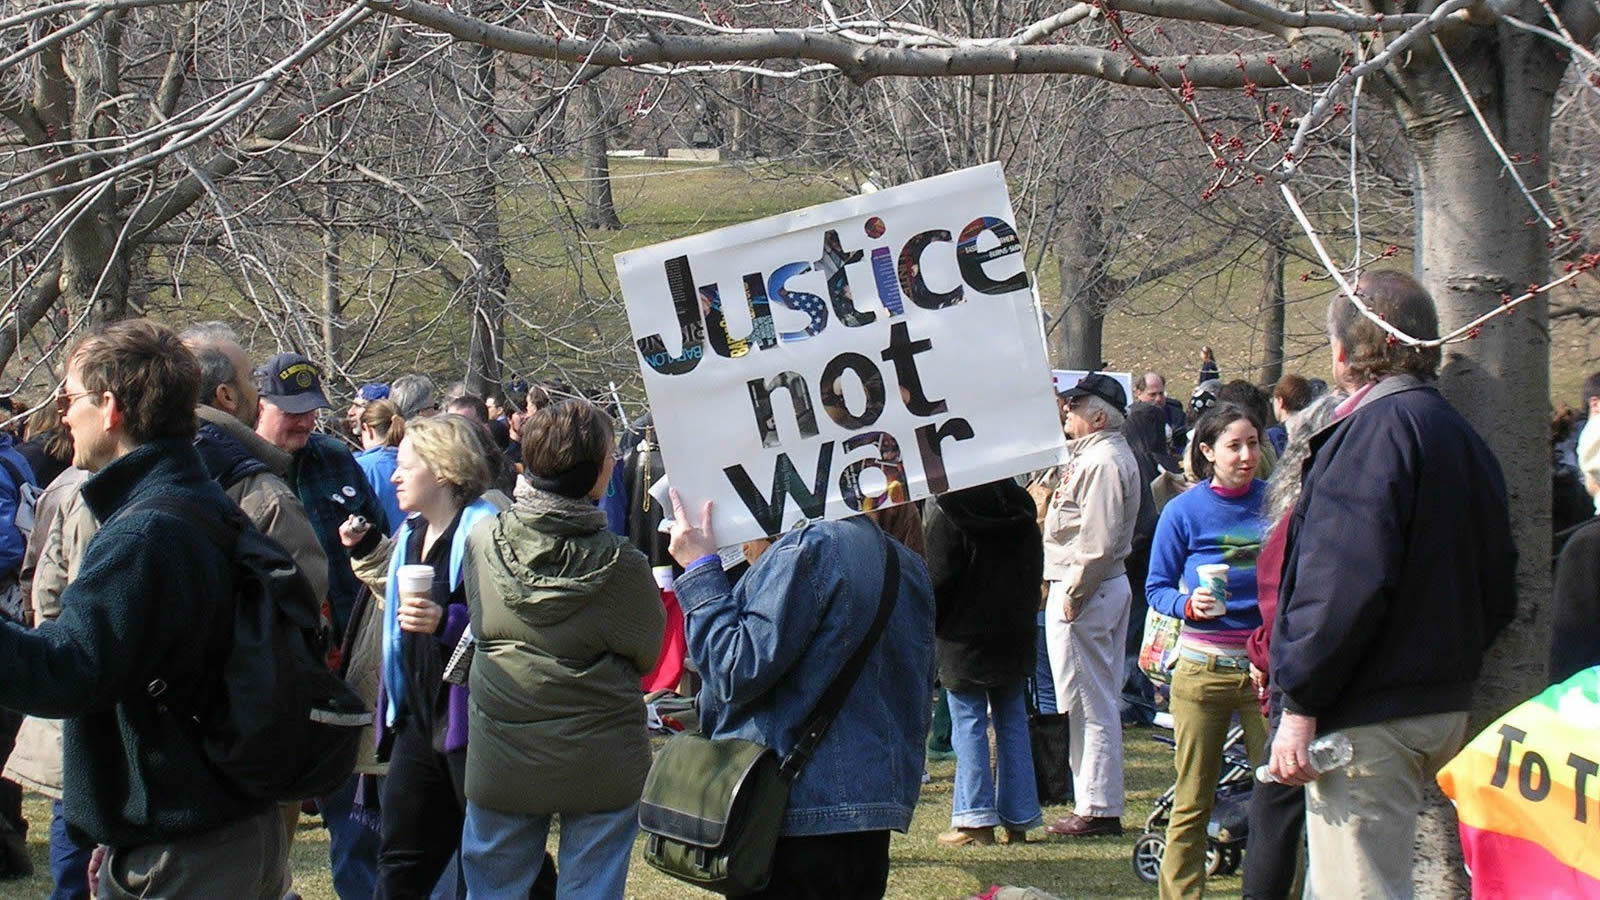 """Protesters in Park with """"Justice Not War"""" Sign"""